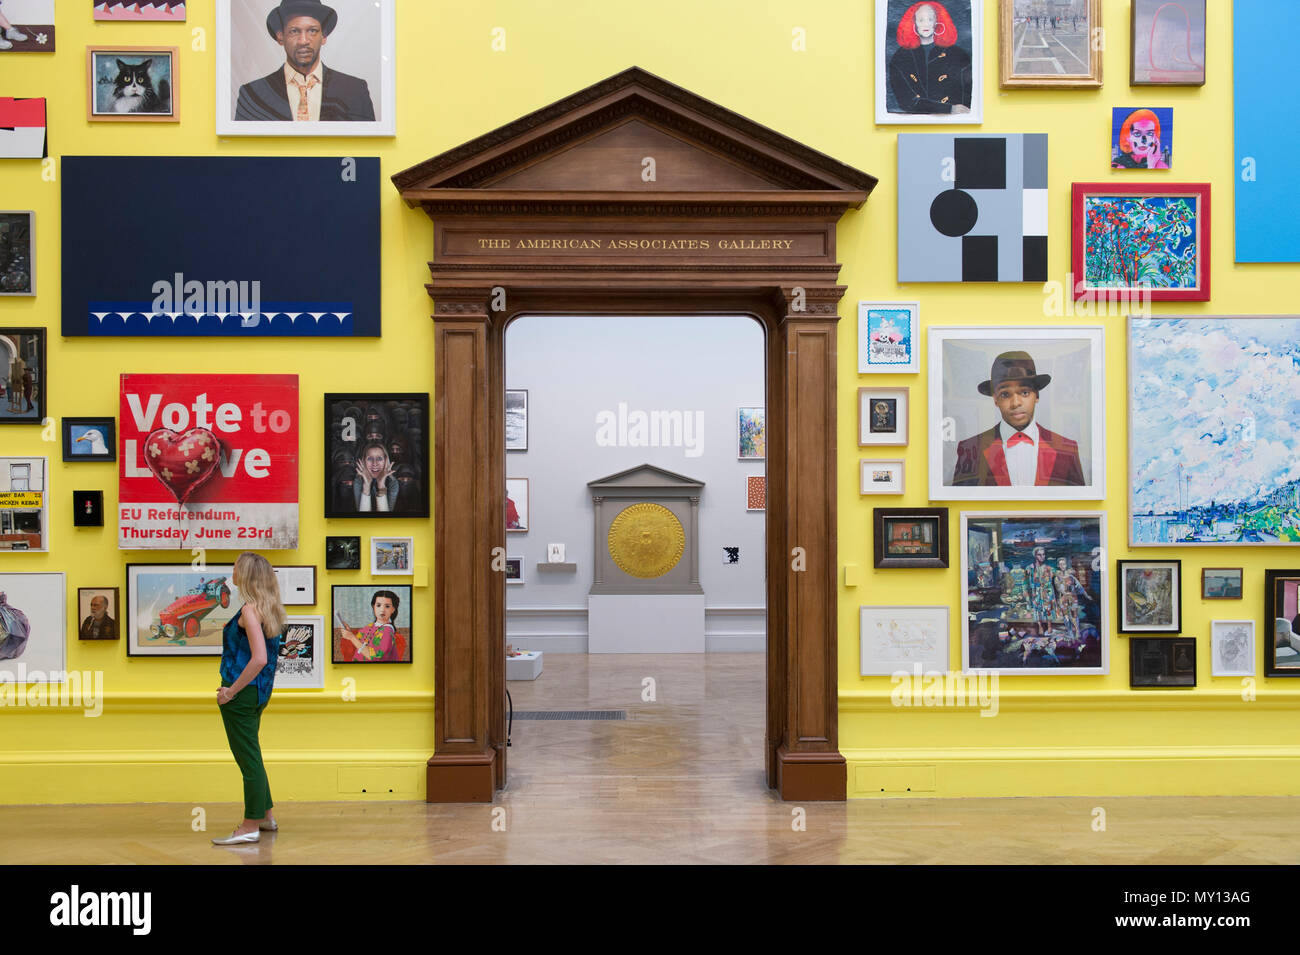 Burlington House, London, UK. 5 June, 2018. The Royal Academy's annual Summer Exhibition celebrates its 250th anniversary. To mark this momentous occasion, the exhibition is co-ordinated by Grayson Perry RA, who, with his committee of fellow artists have handpicked over 1,300 artworks in an array of mediums. There's a monumental sculpture by Anish Kapoor RA in the courtyard, and within the galleries you'll find vast new works by David Hockney RA and Joana Vasconcelos. Credit: Malcolm Park editorial/Alamy Live News - Stock Image